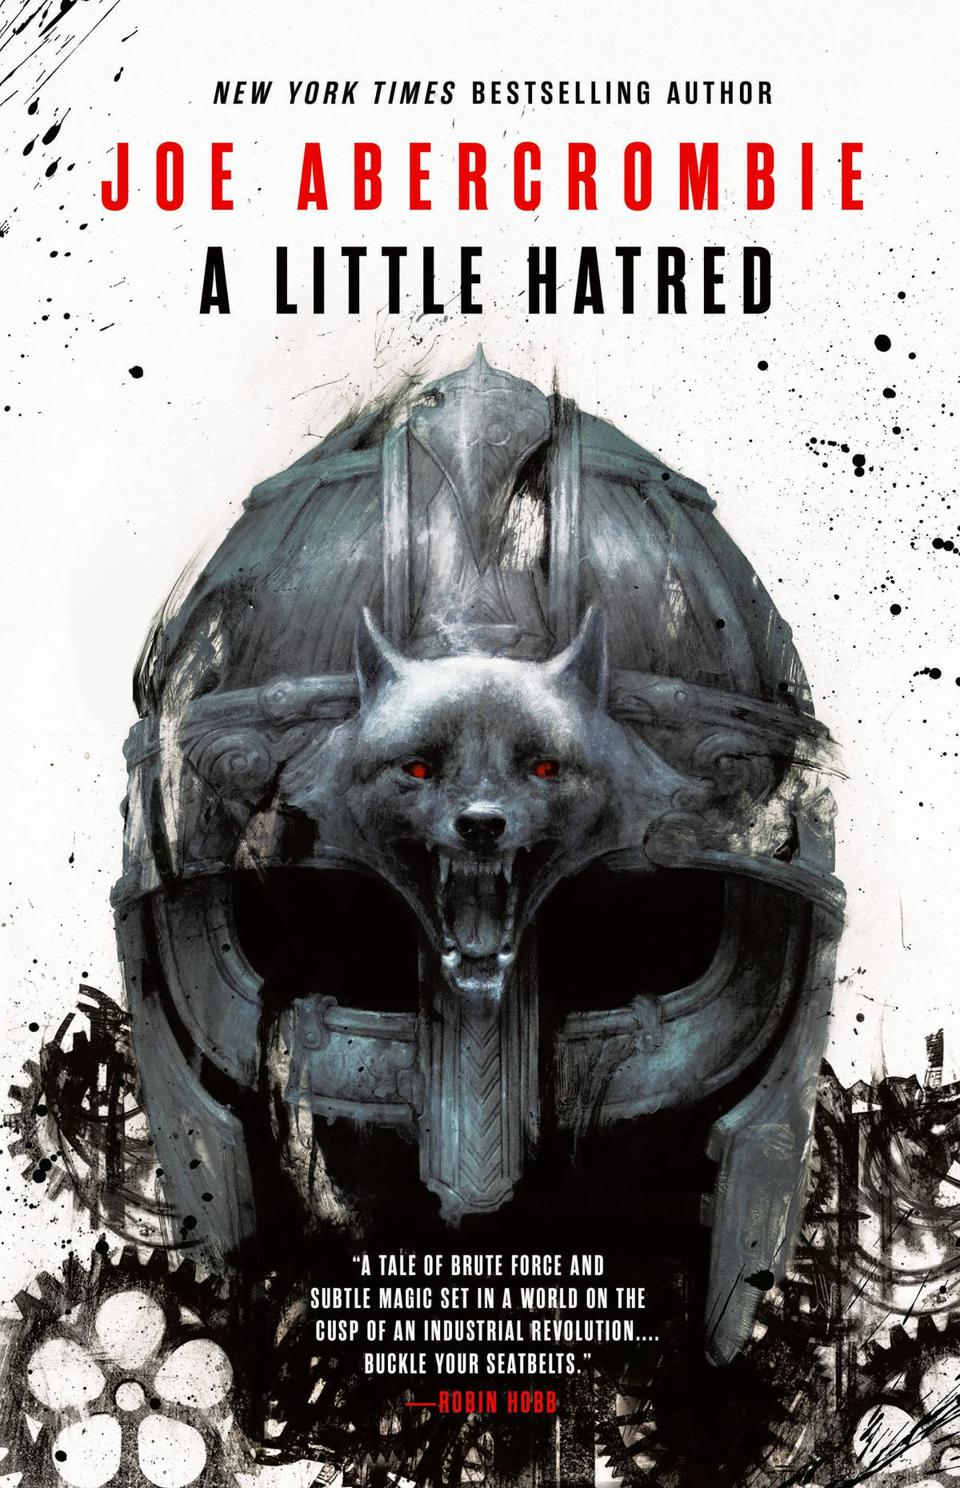 A Little Hatred' Review: Joe Abercrombie's 'First Law' Meets ... on england map, jim butcher map, scott lynch map, empire of thorns map, red country map, stephen king map, j.r.r. tolkien map, got map, tad williams map, robin hobb map, pat rothfuss map, anthony ryan map, fictional world map, university of manchester map, midkemia map, malazan map, david eddings map, the name of the wind map, robert jordan map,